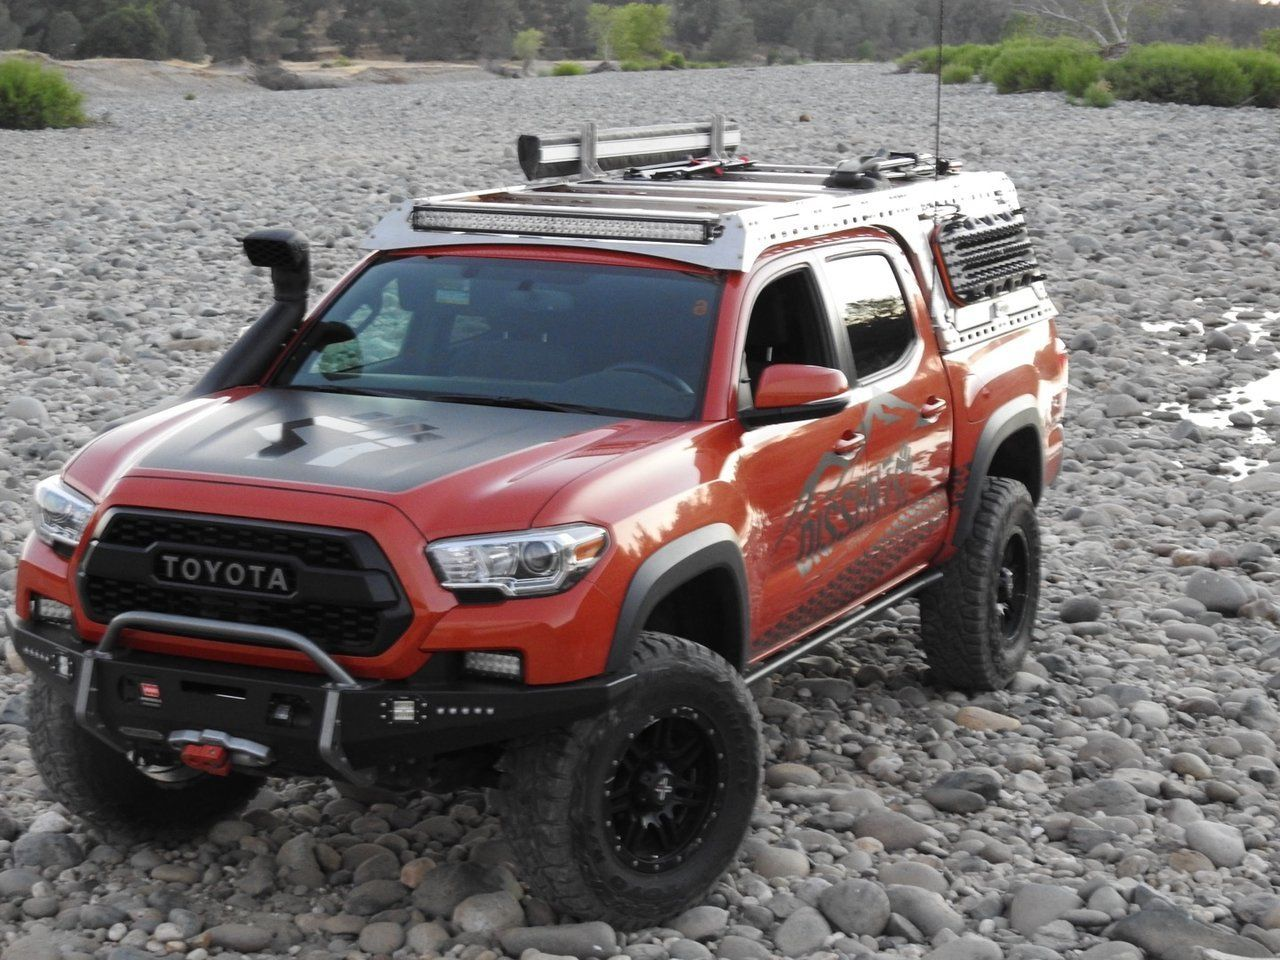 Dissent offroad Toyota truck, trd